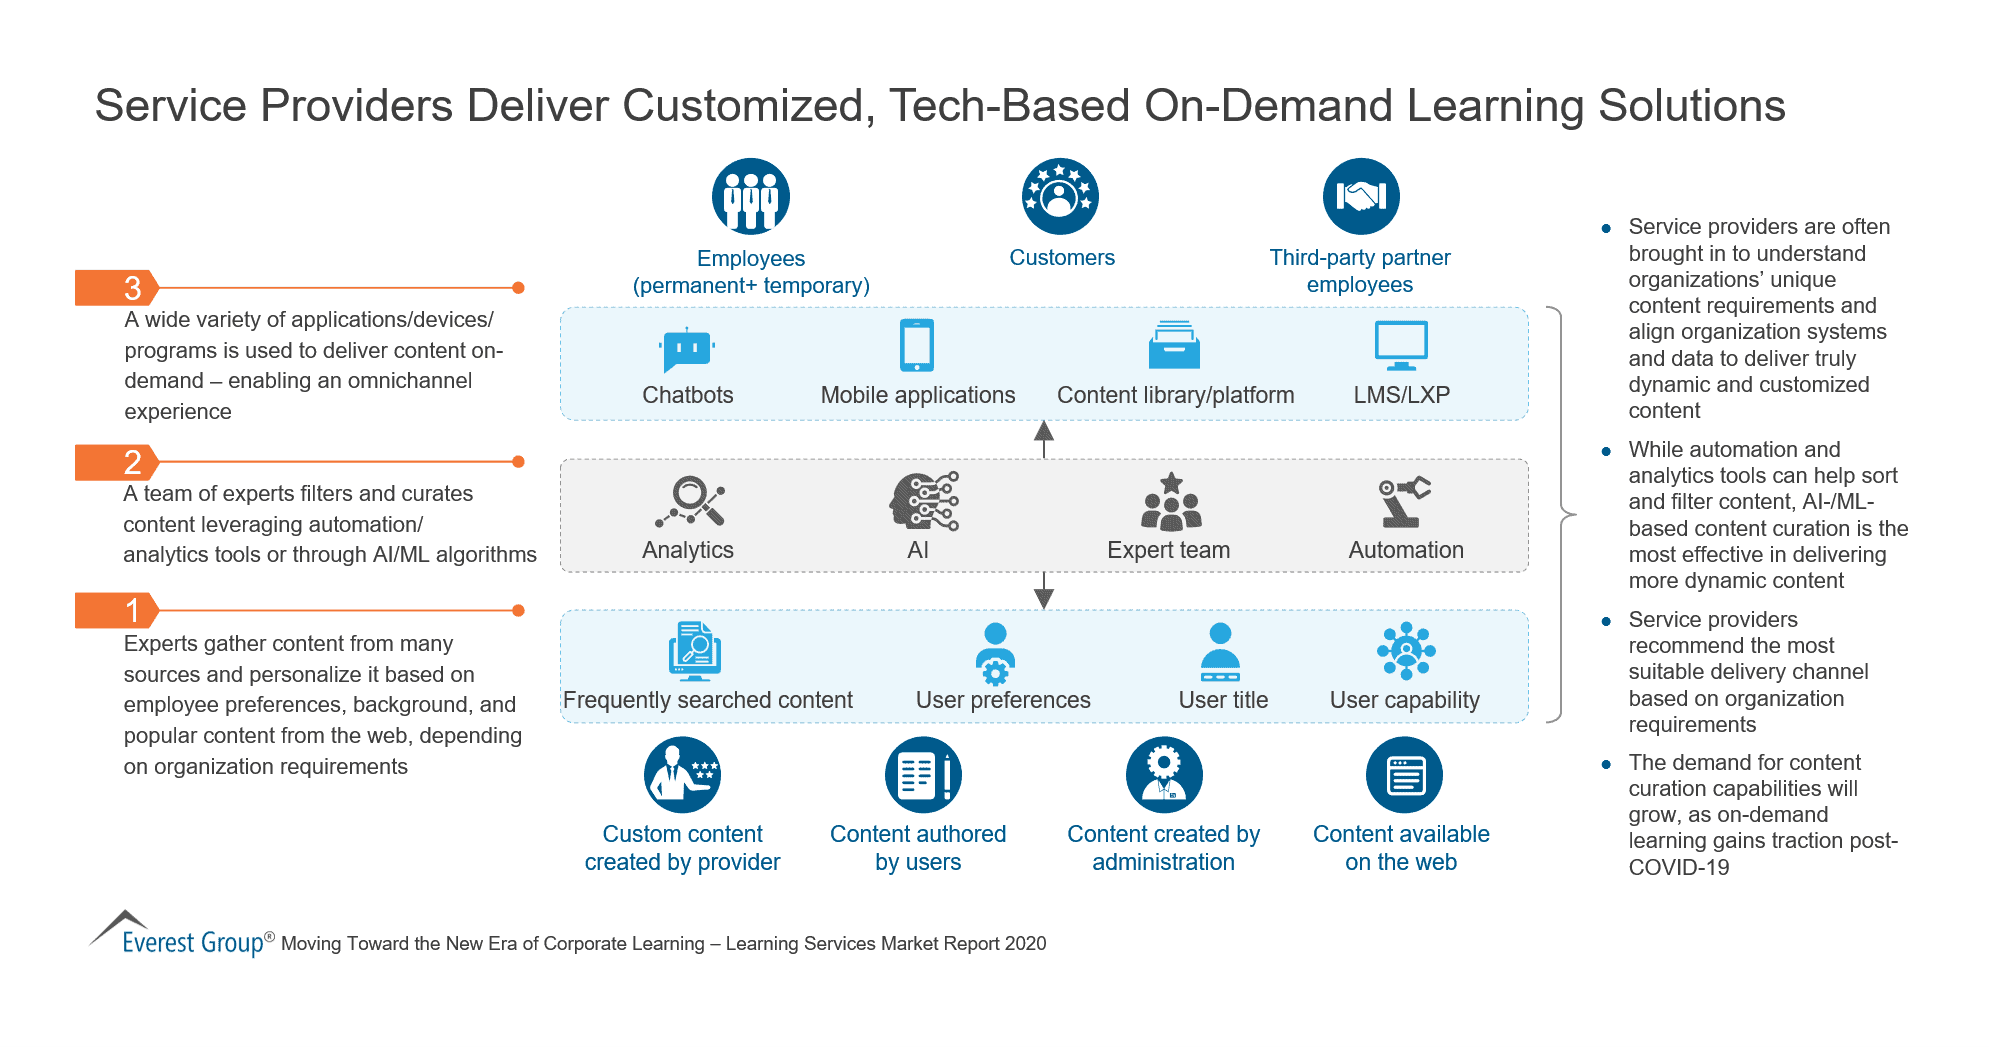 Service Providers Deliver Customized, Tech-Based On-Demand Learning Solutions